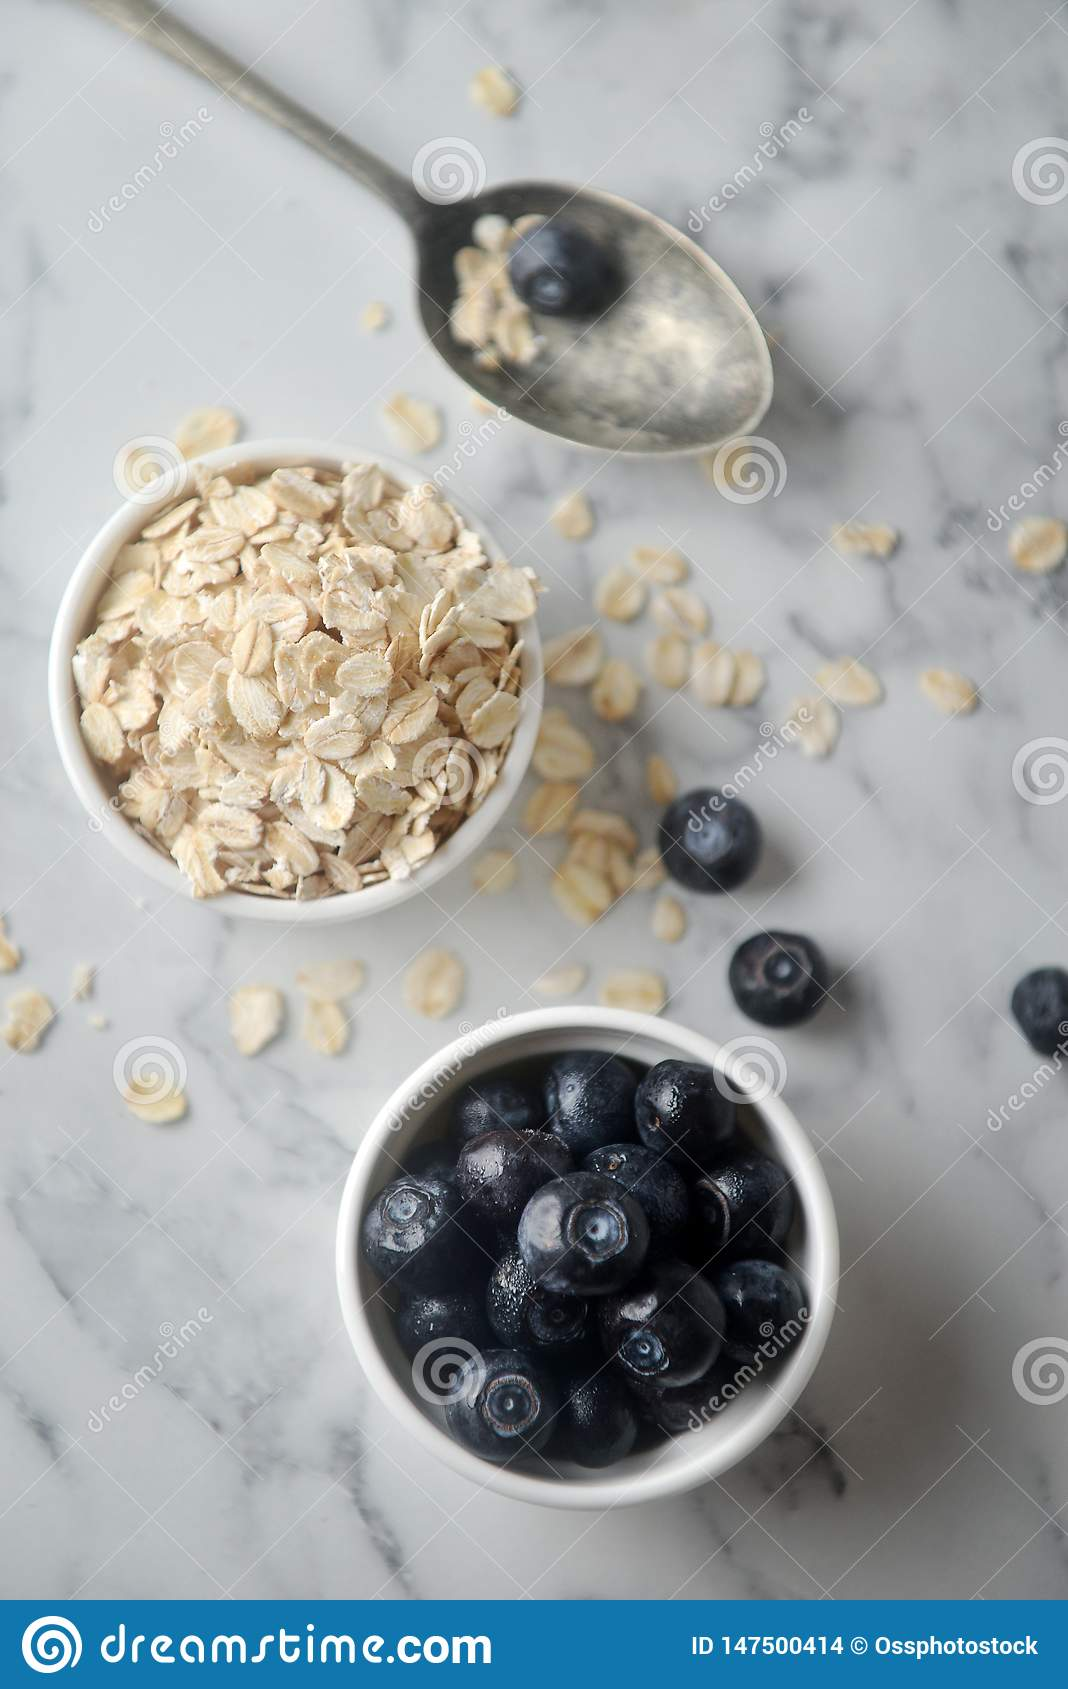 A fresh blueberries and Organic rolled oats in bowl, on marble background. Concept of cooking ingredients, decorate bakery,